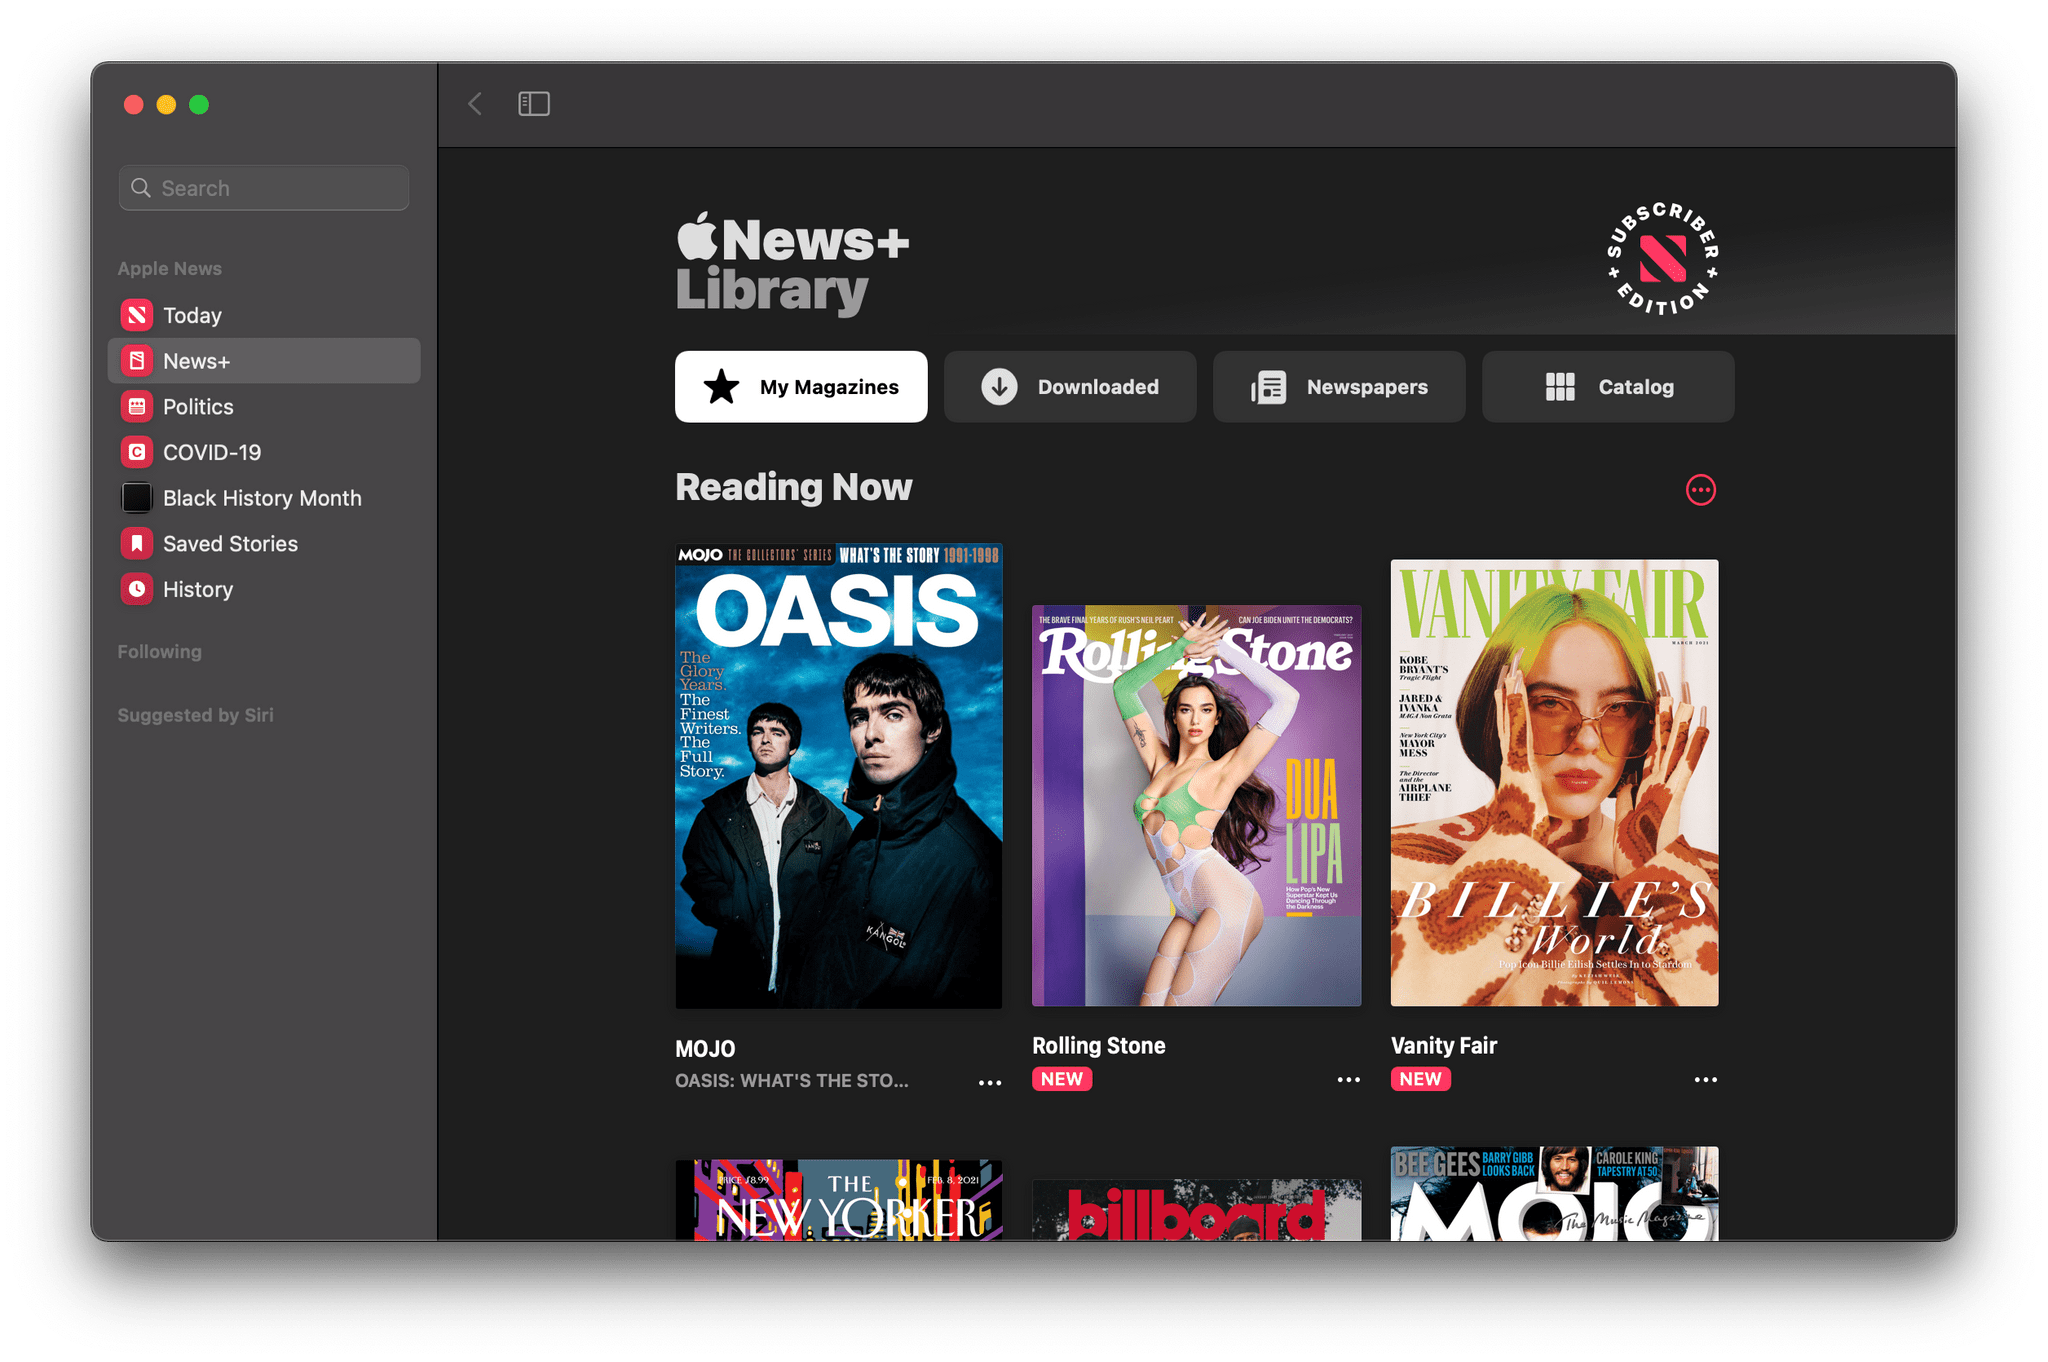 The News+ tab has been redesigned.